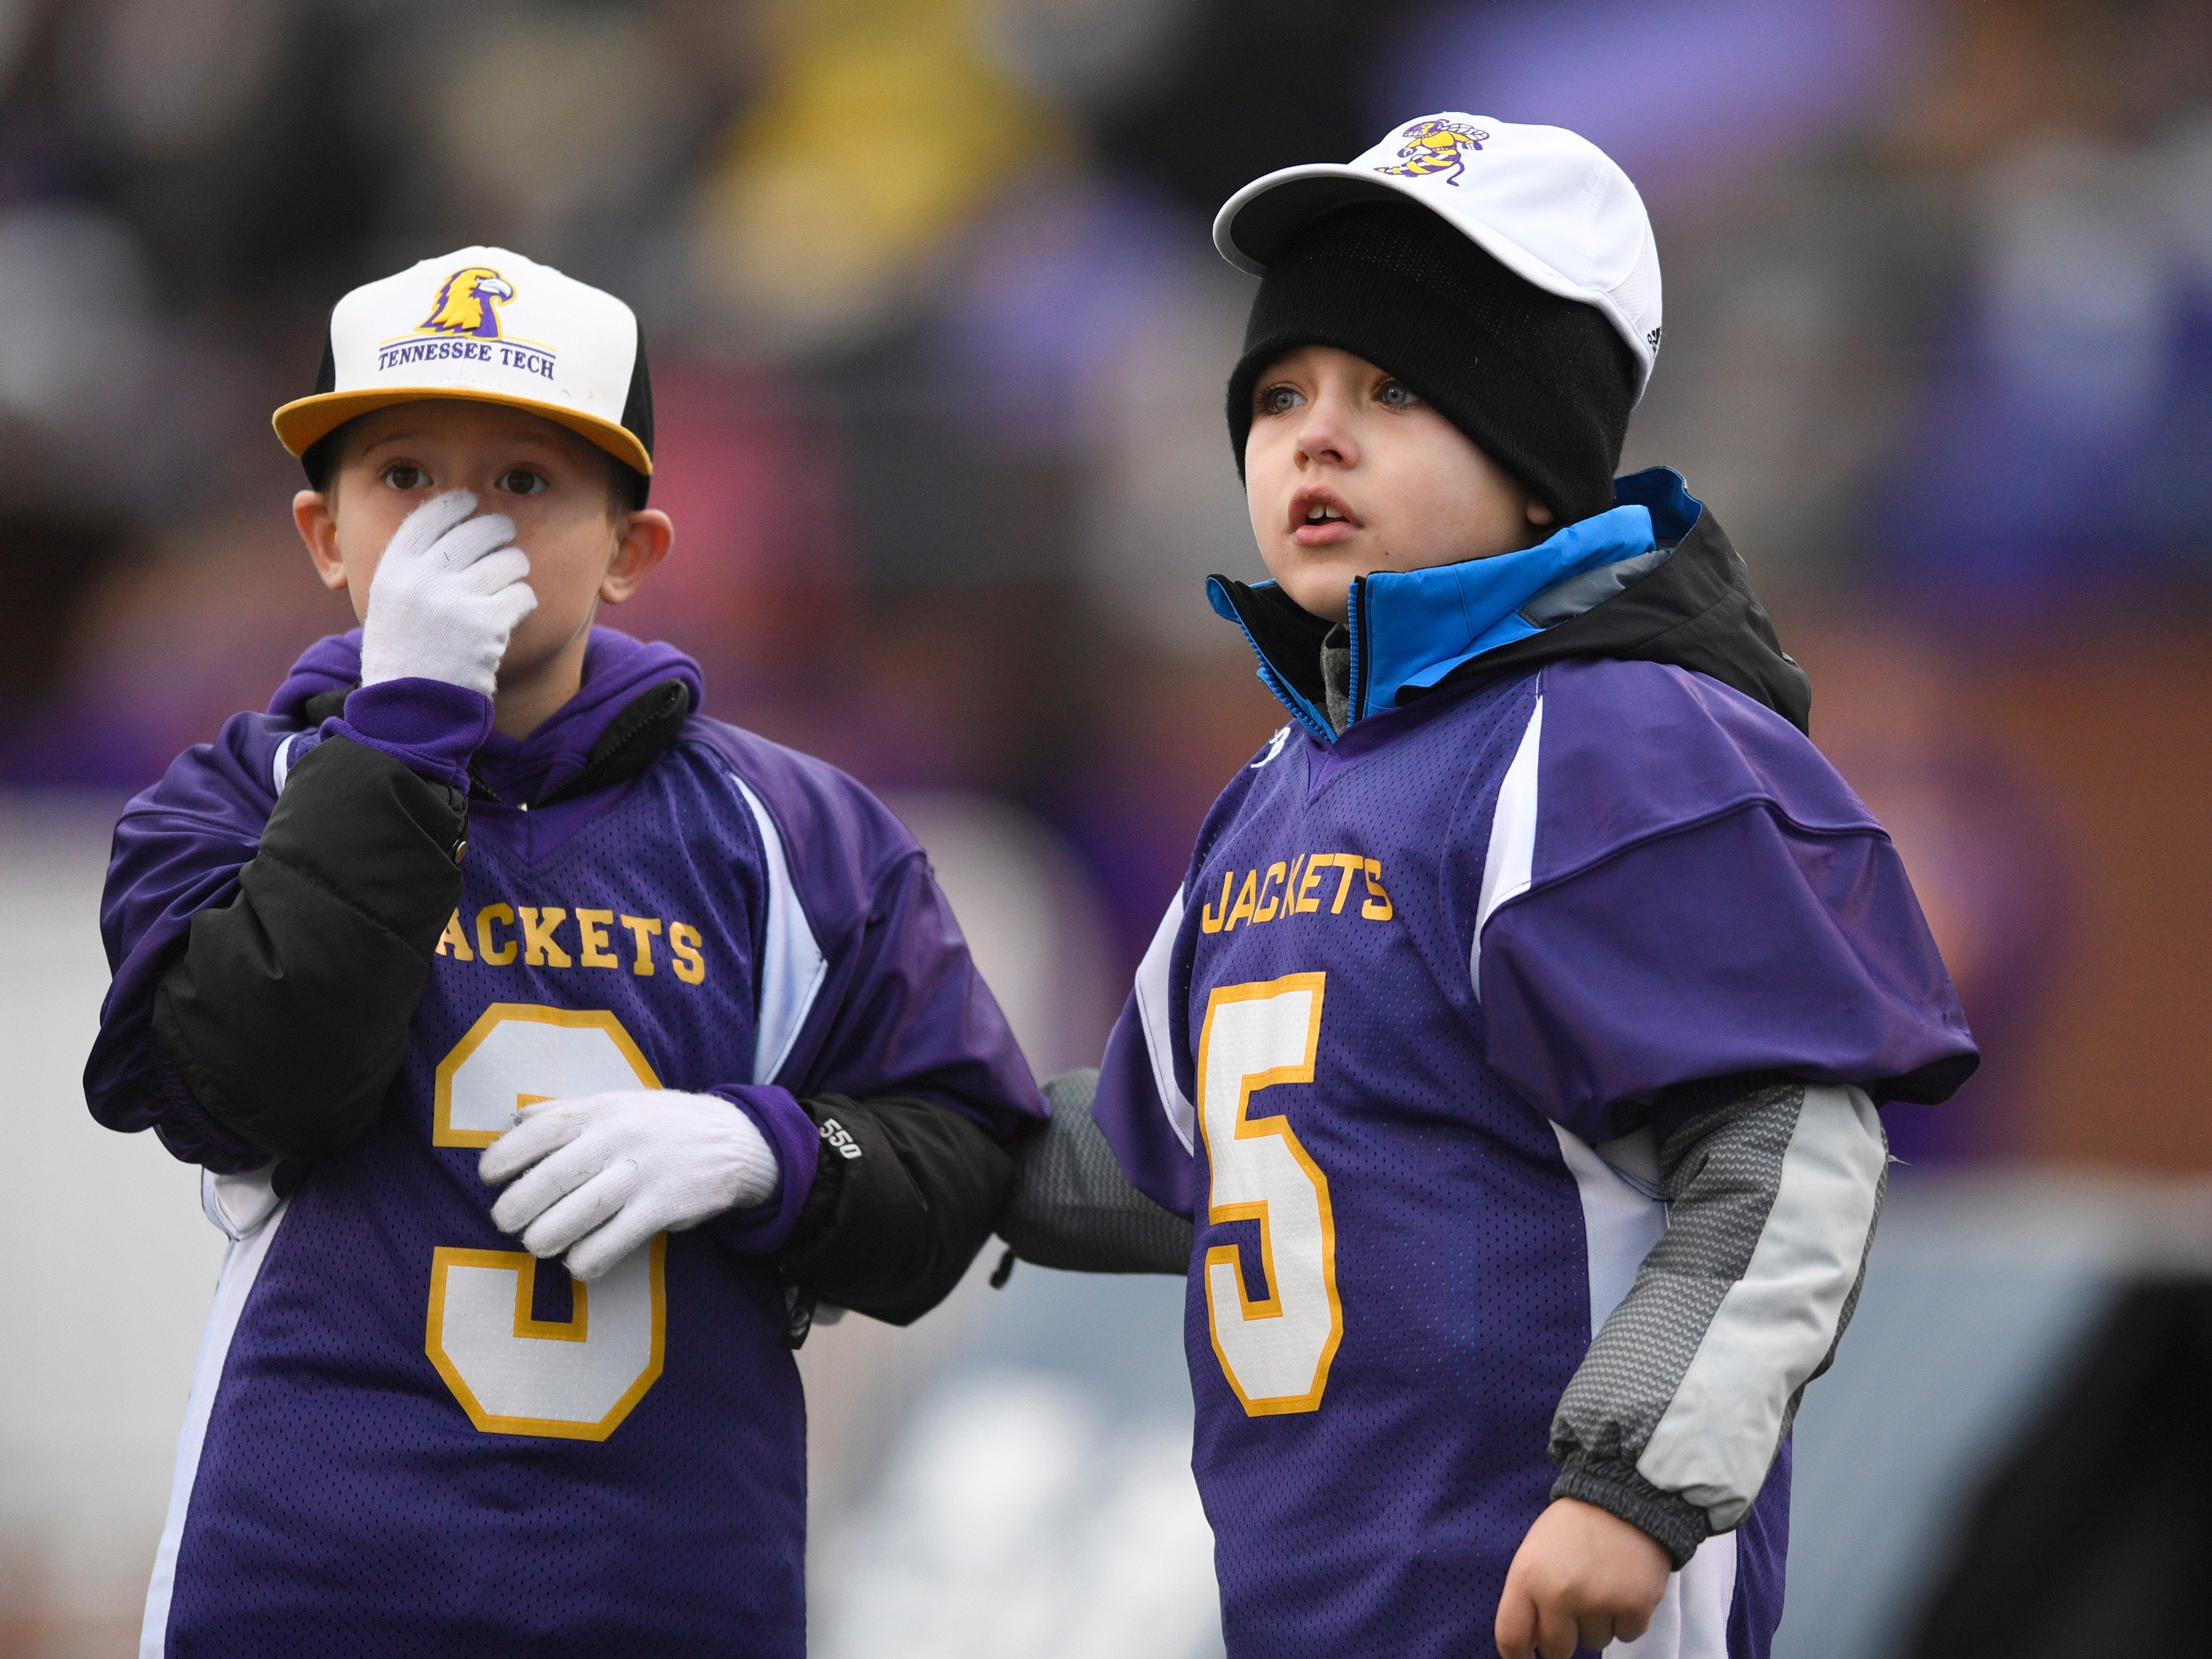 Trousdale fans watch the action in the third quarter during the Class 2A BlueCross Bowl state championship at Tennessee Tech's Tucker Stadium in Cookeville, Tenn., on Thursday, Nov. 29, 2018.